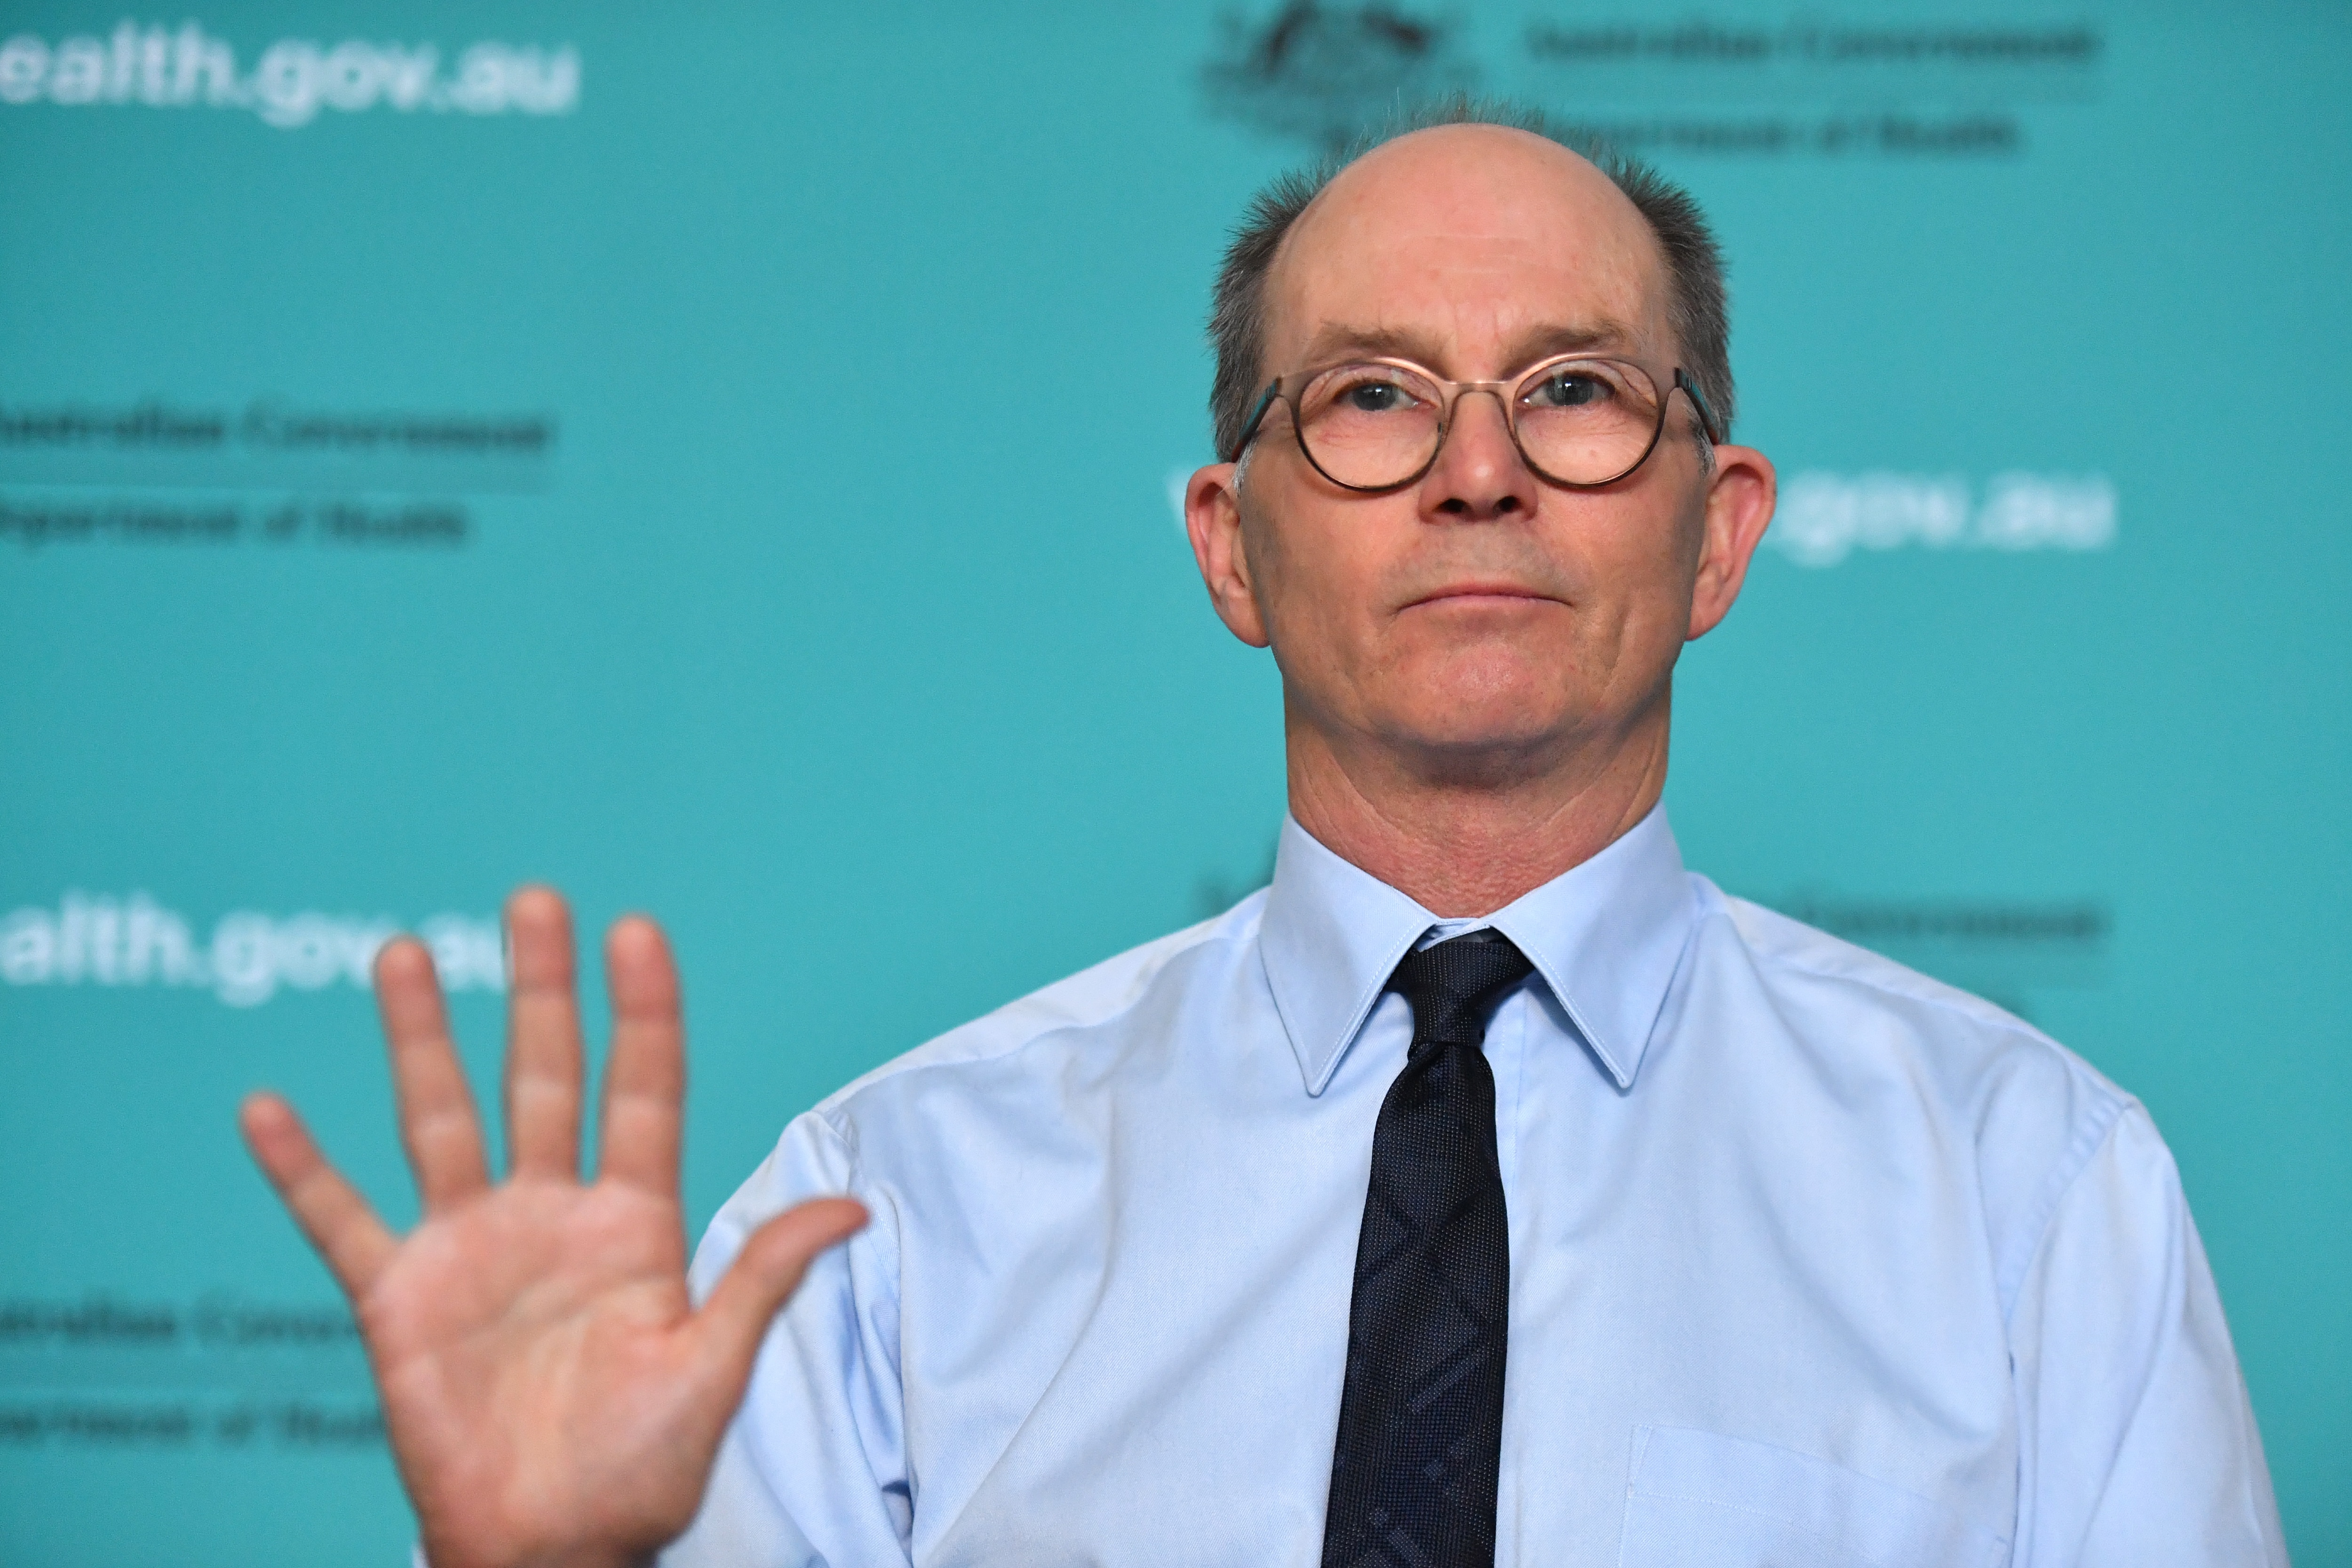 Deputy Chief Medical Officer Professor Paul Kelly speaks to the media during a press conference at the Australian Department of Health in Canberra, Thursday, March 19, 2020. (AAP Image/Mick Tsikas) NO ARCHIVING